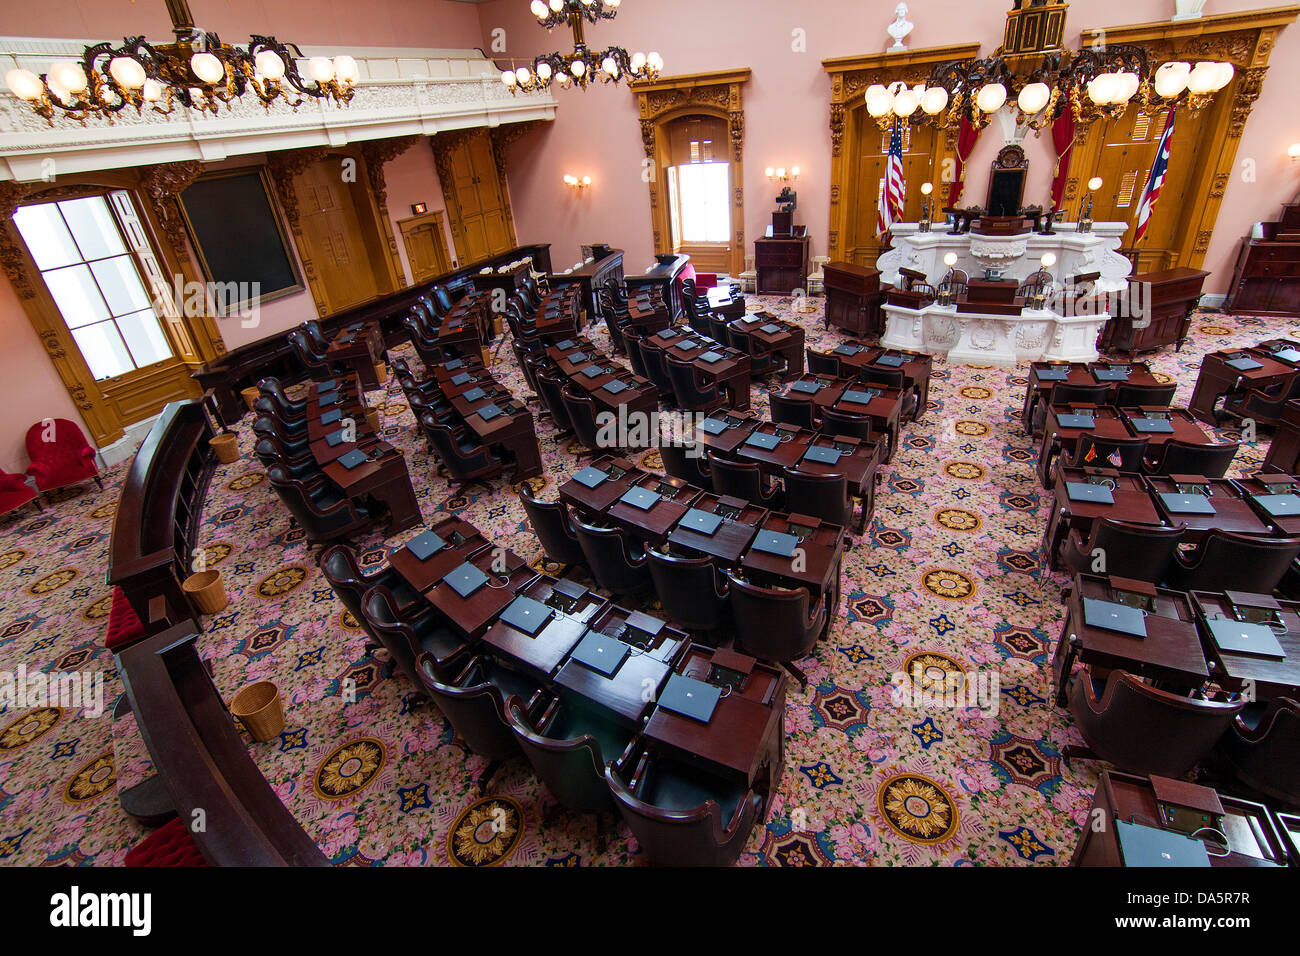 The Ohio General Assembly at the Ohio Statehouse in Columbus, Ohio, USA. - Stock Image